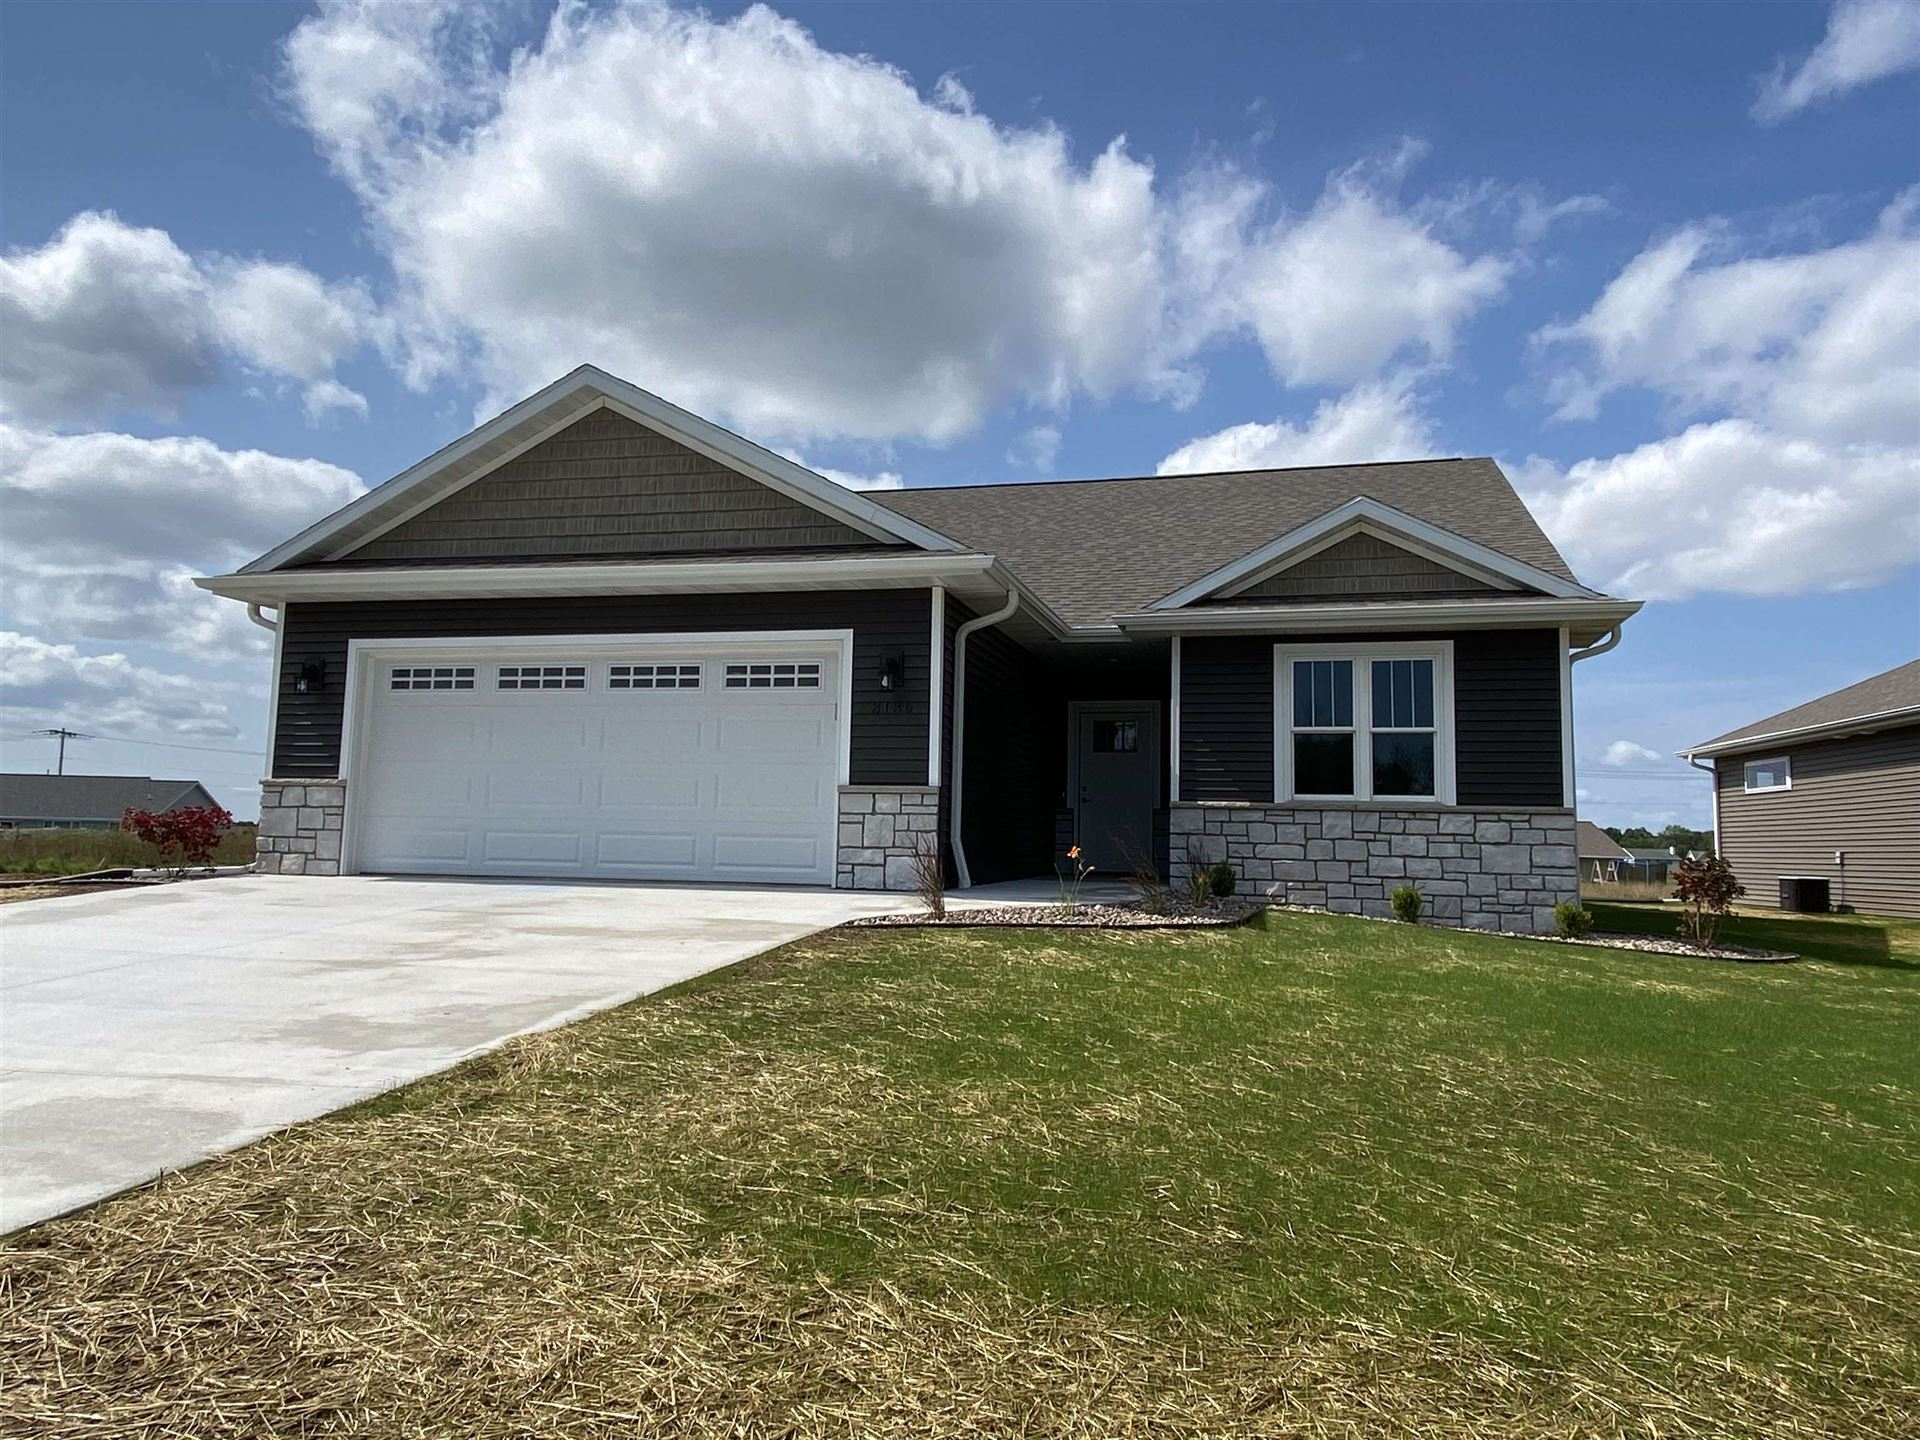 3136 LAZY OAK Court, Green Bay, WI 54313 - MLS#: 50240054